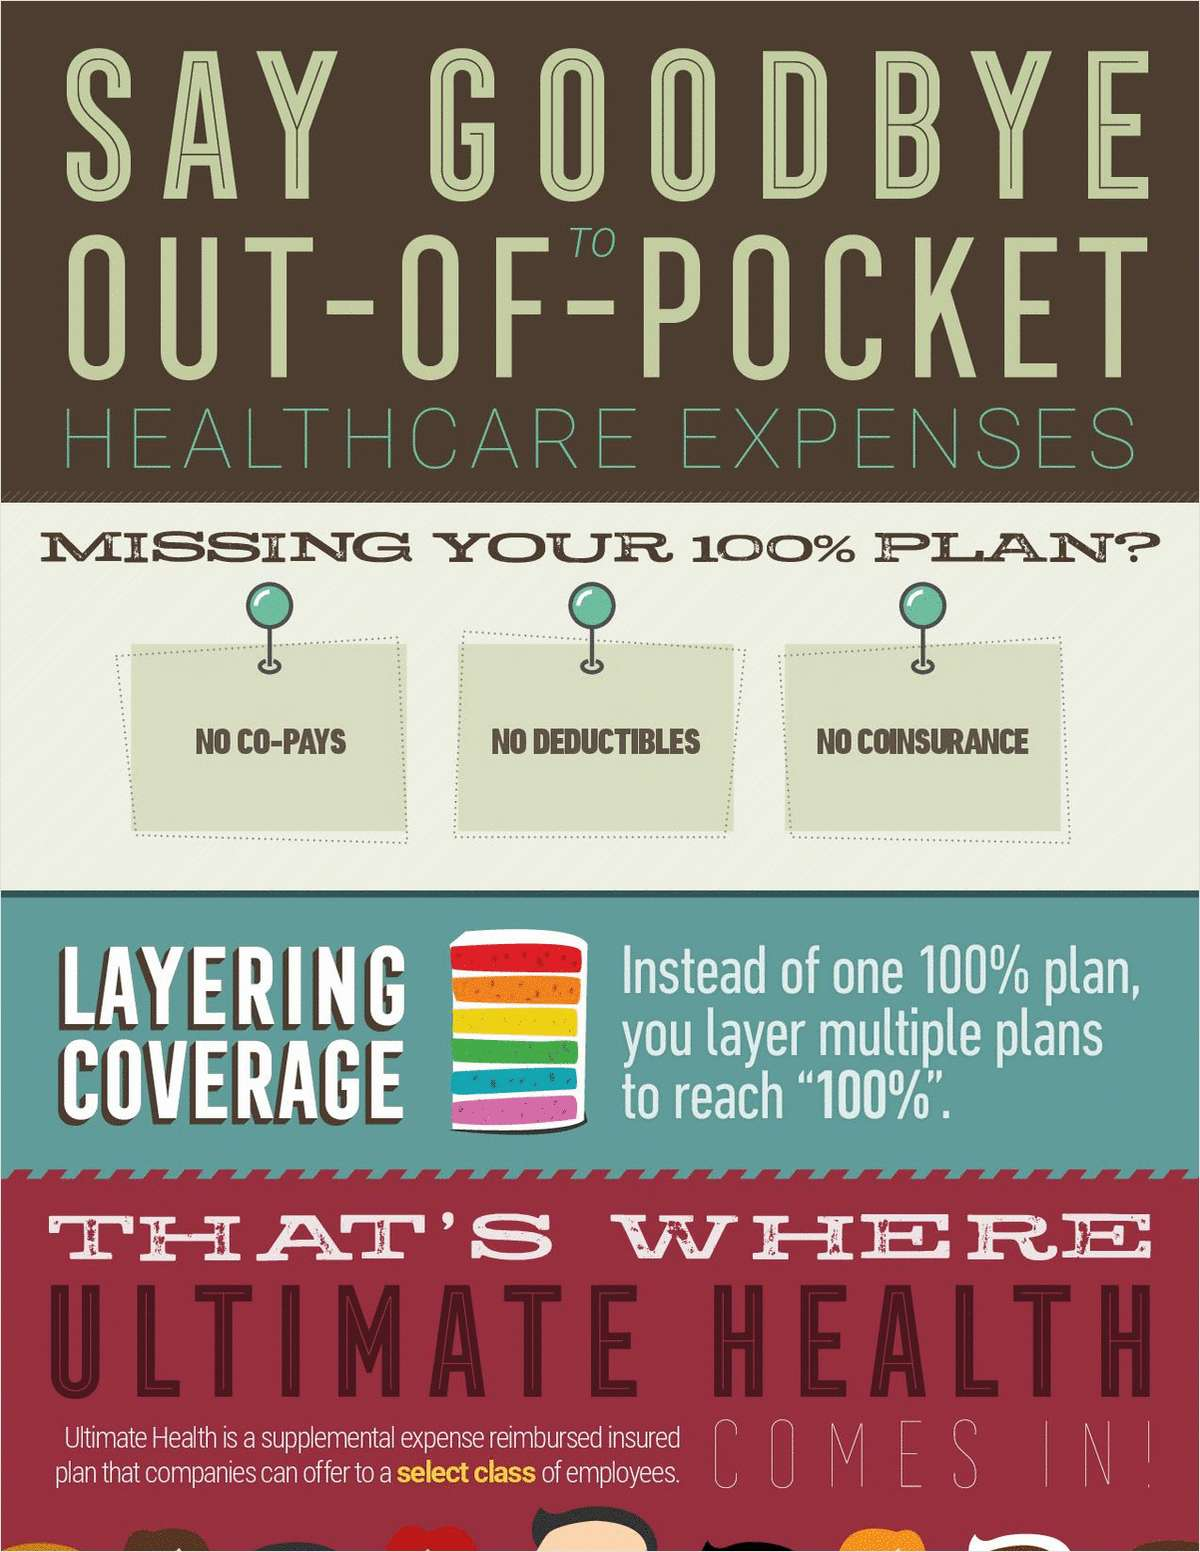 Help Clients' Employees Say Goodbye to Out-of-Pocket Healthcare Expenses